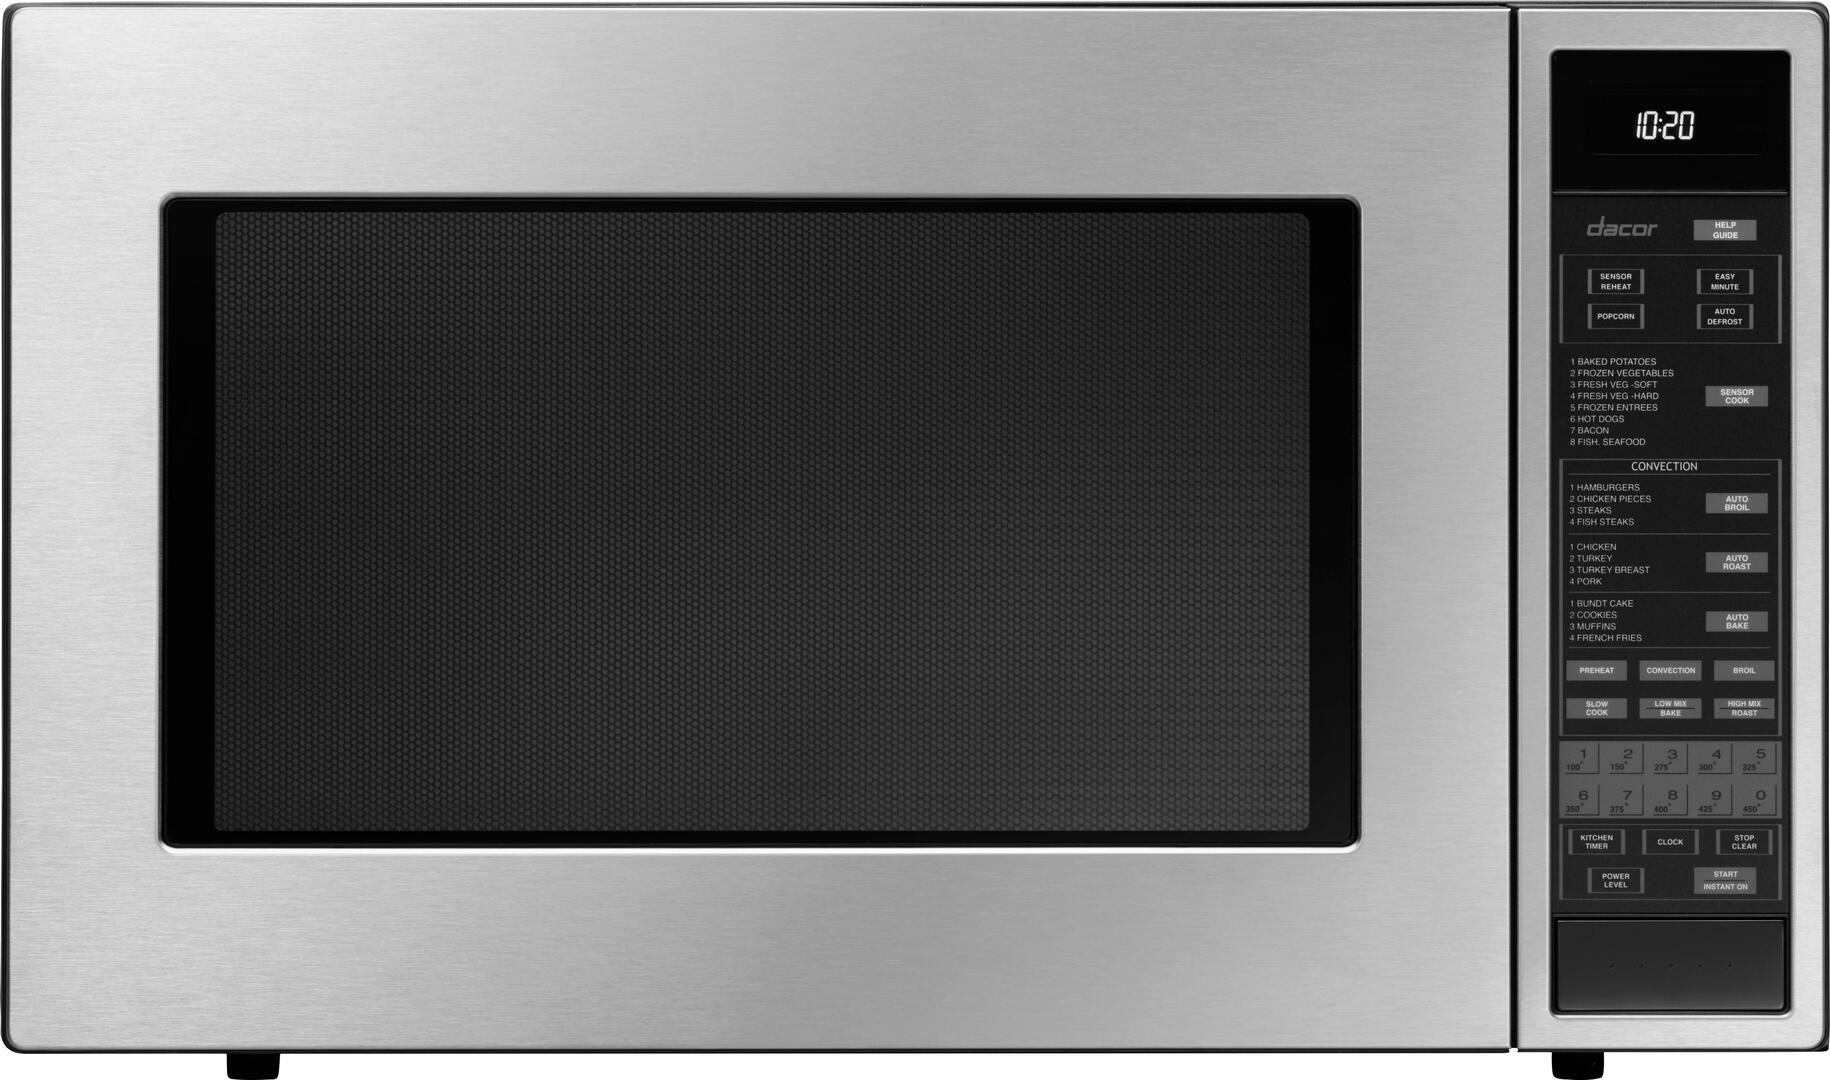 Dacor Heritage Dcm24s 24 Series Convection Microwave